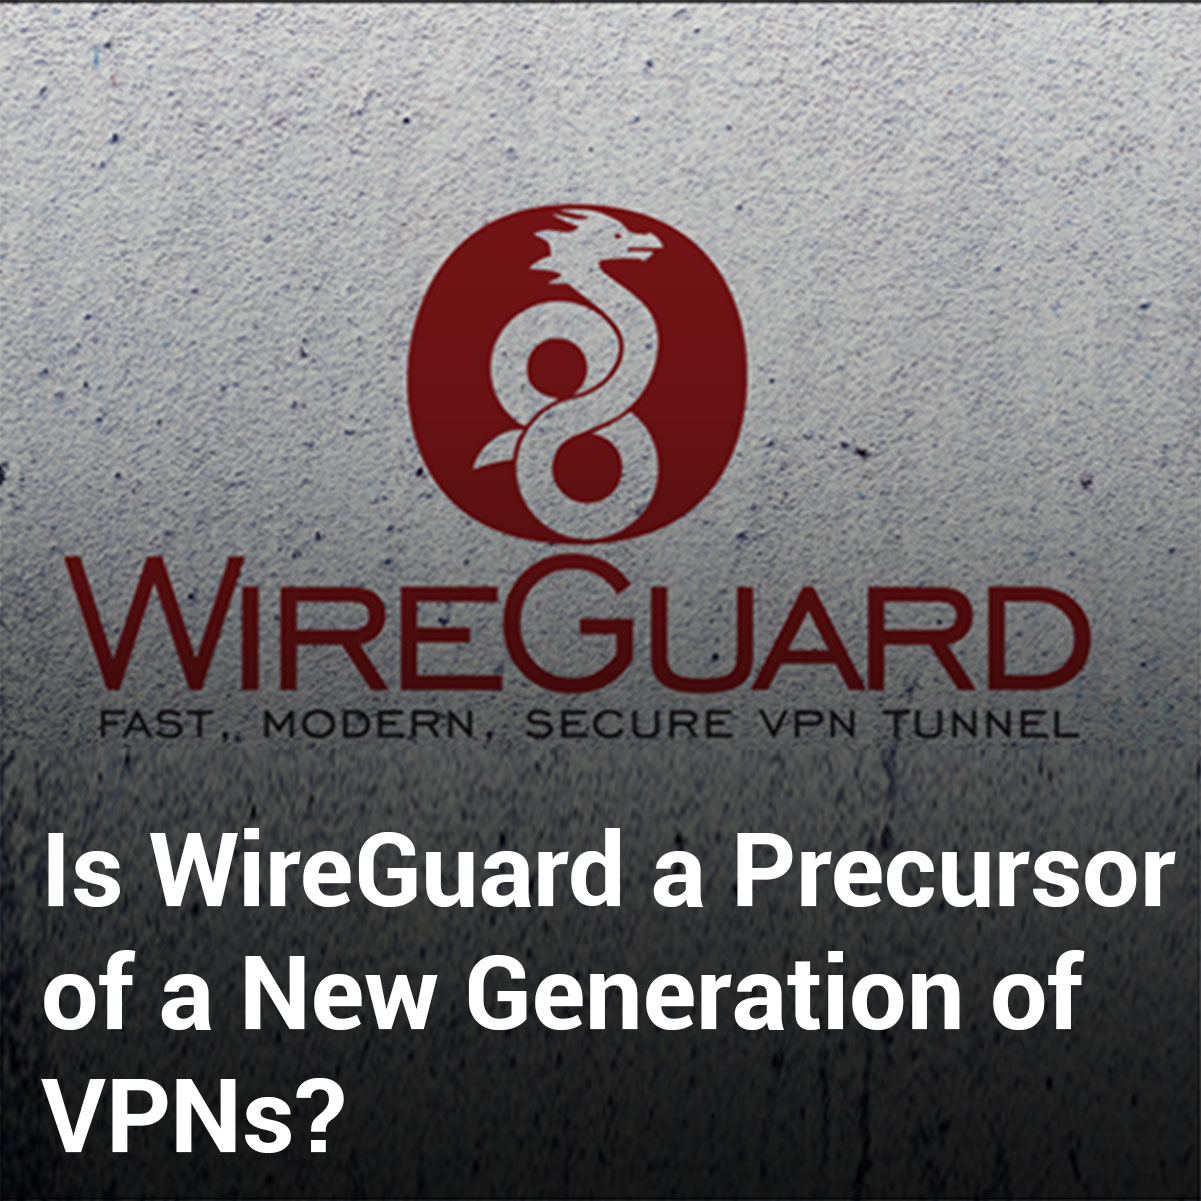 Is WireGuard a Precursor of a New Generation of VPNs? - VPNRanks